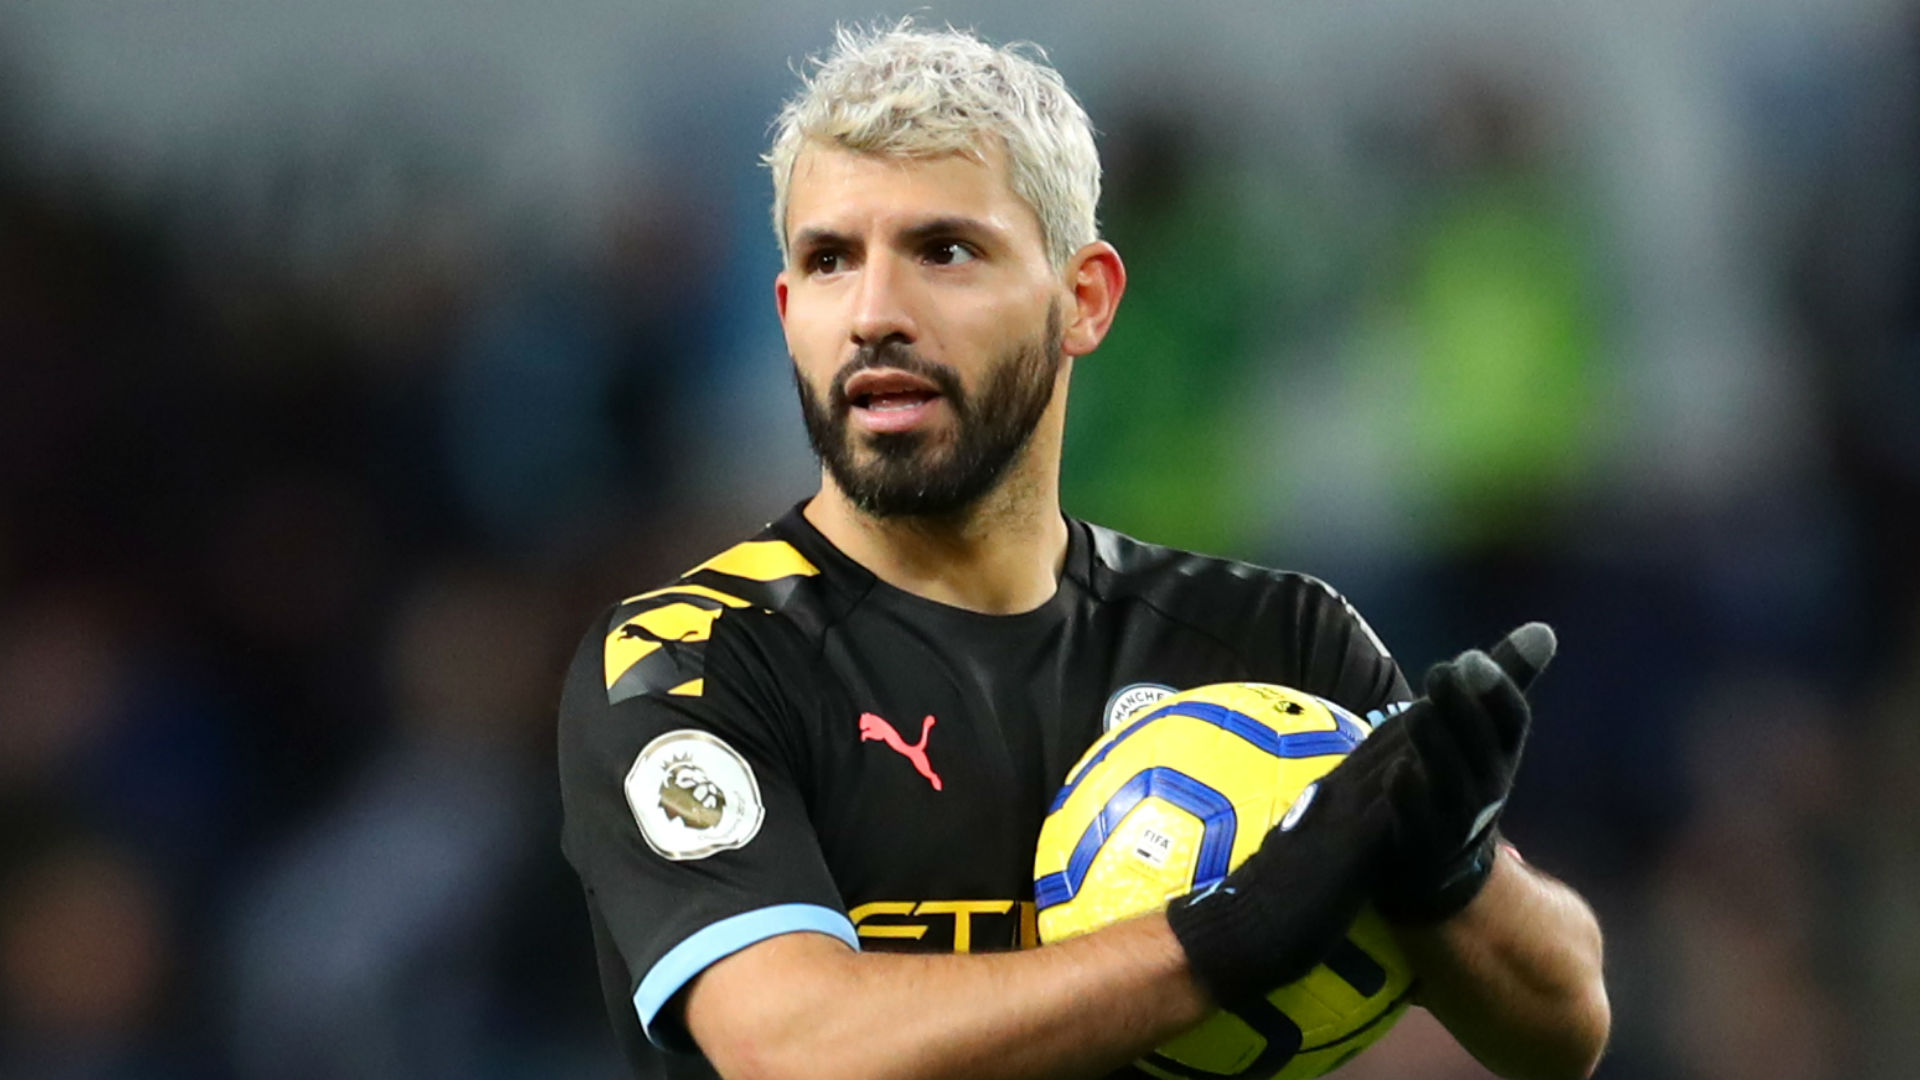 Rumour Has It: Manchester City could let Aguero leave at end of season